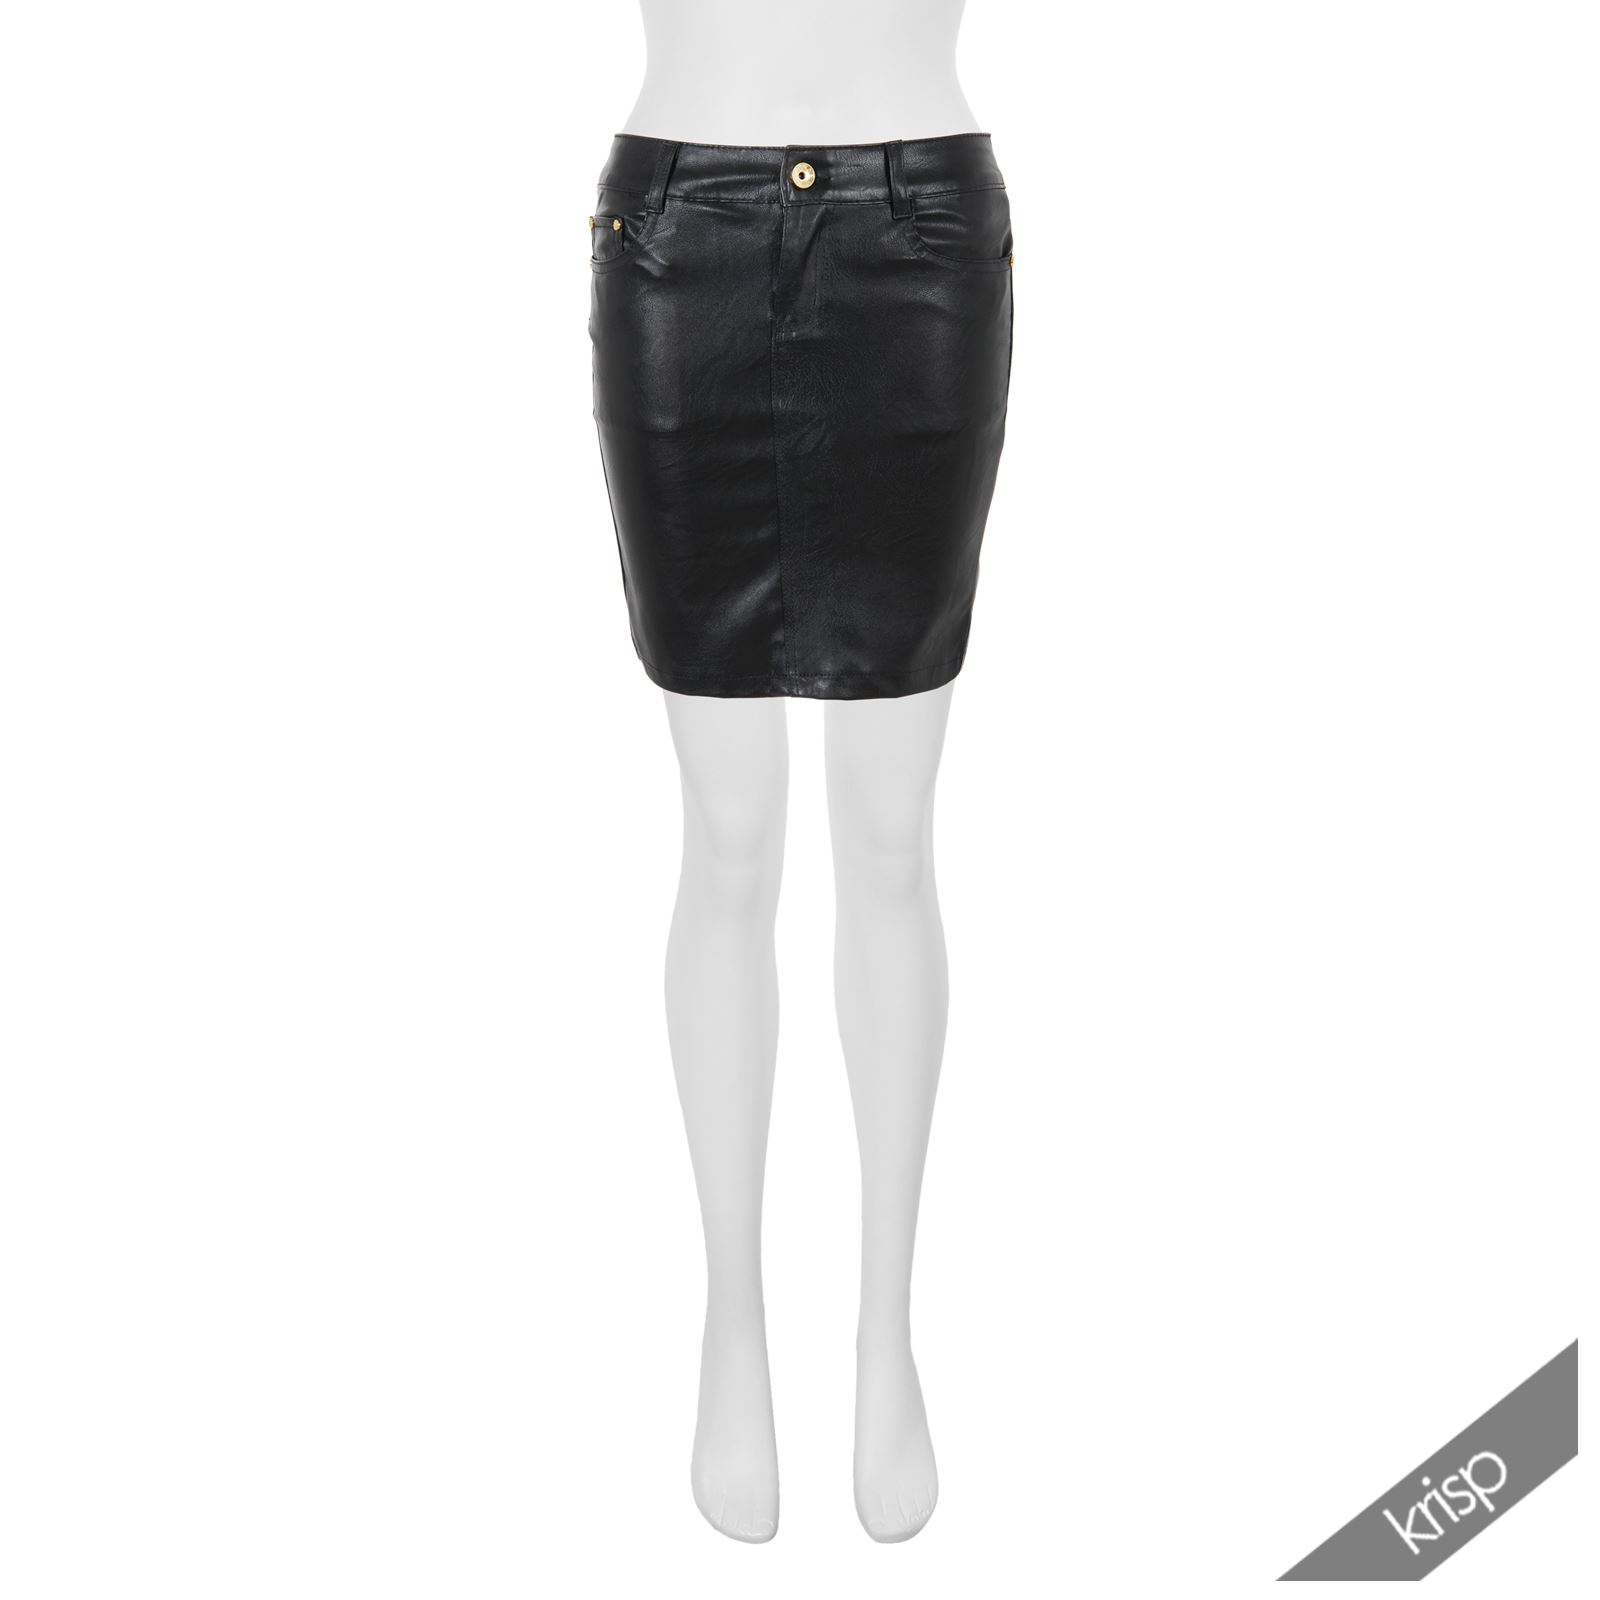 Womens-Ladies-Leather-Pencil-Skirt-Sexy-Wet-Look-Stretch-PU-Mini-Midi-Bodycon thumbnail 4